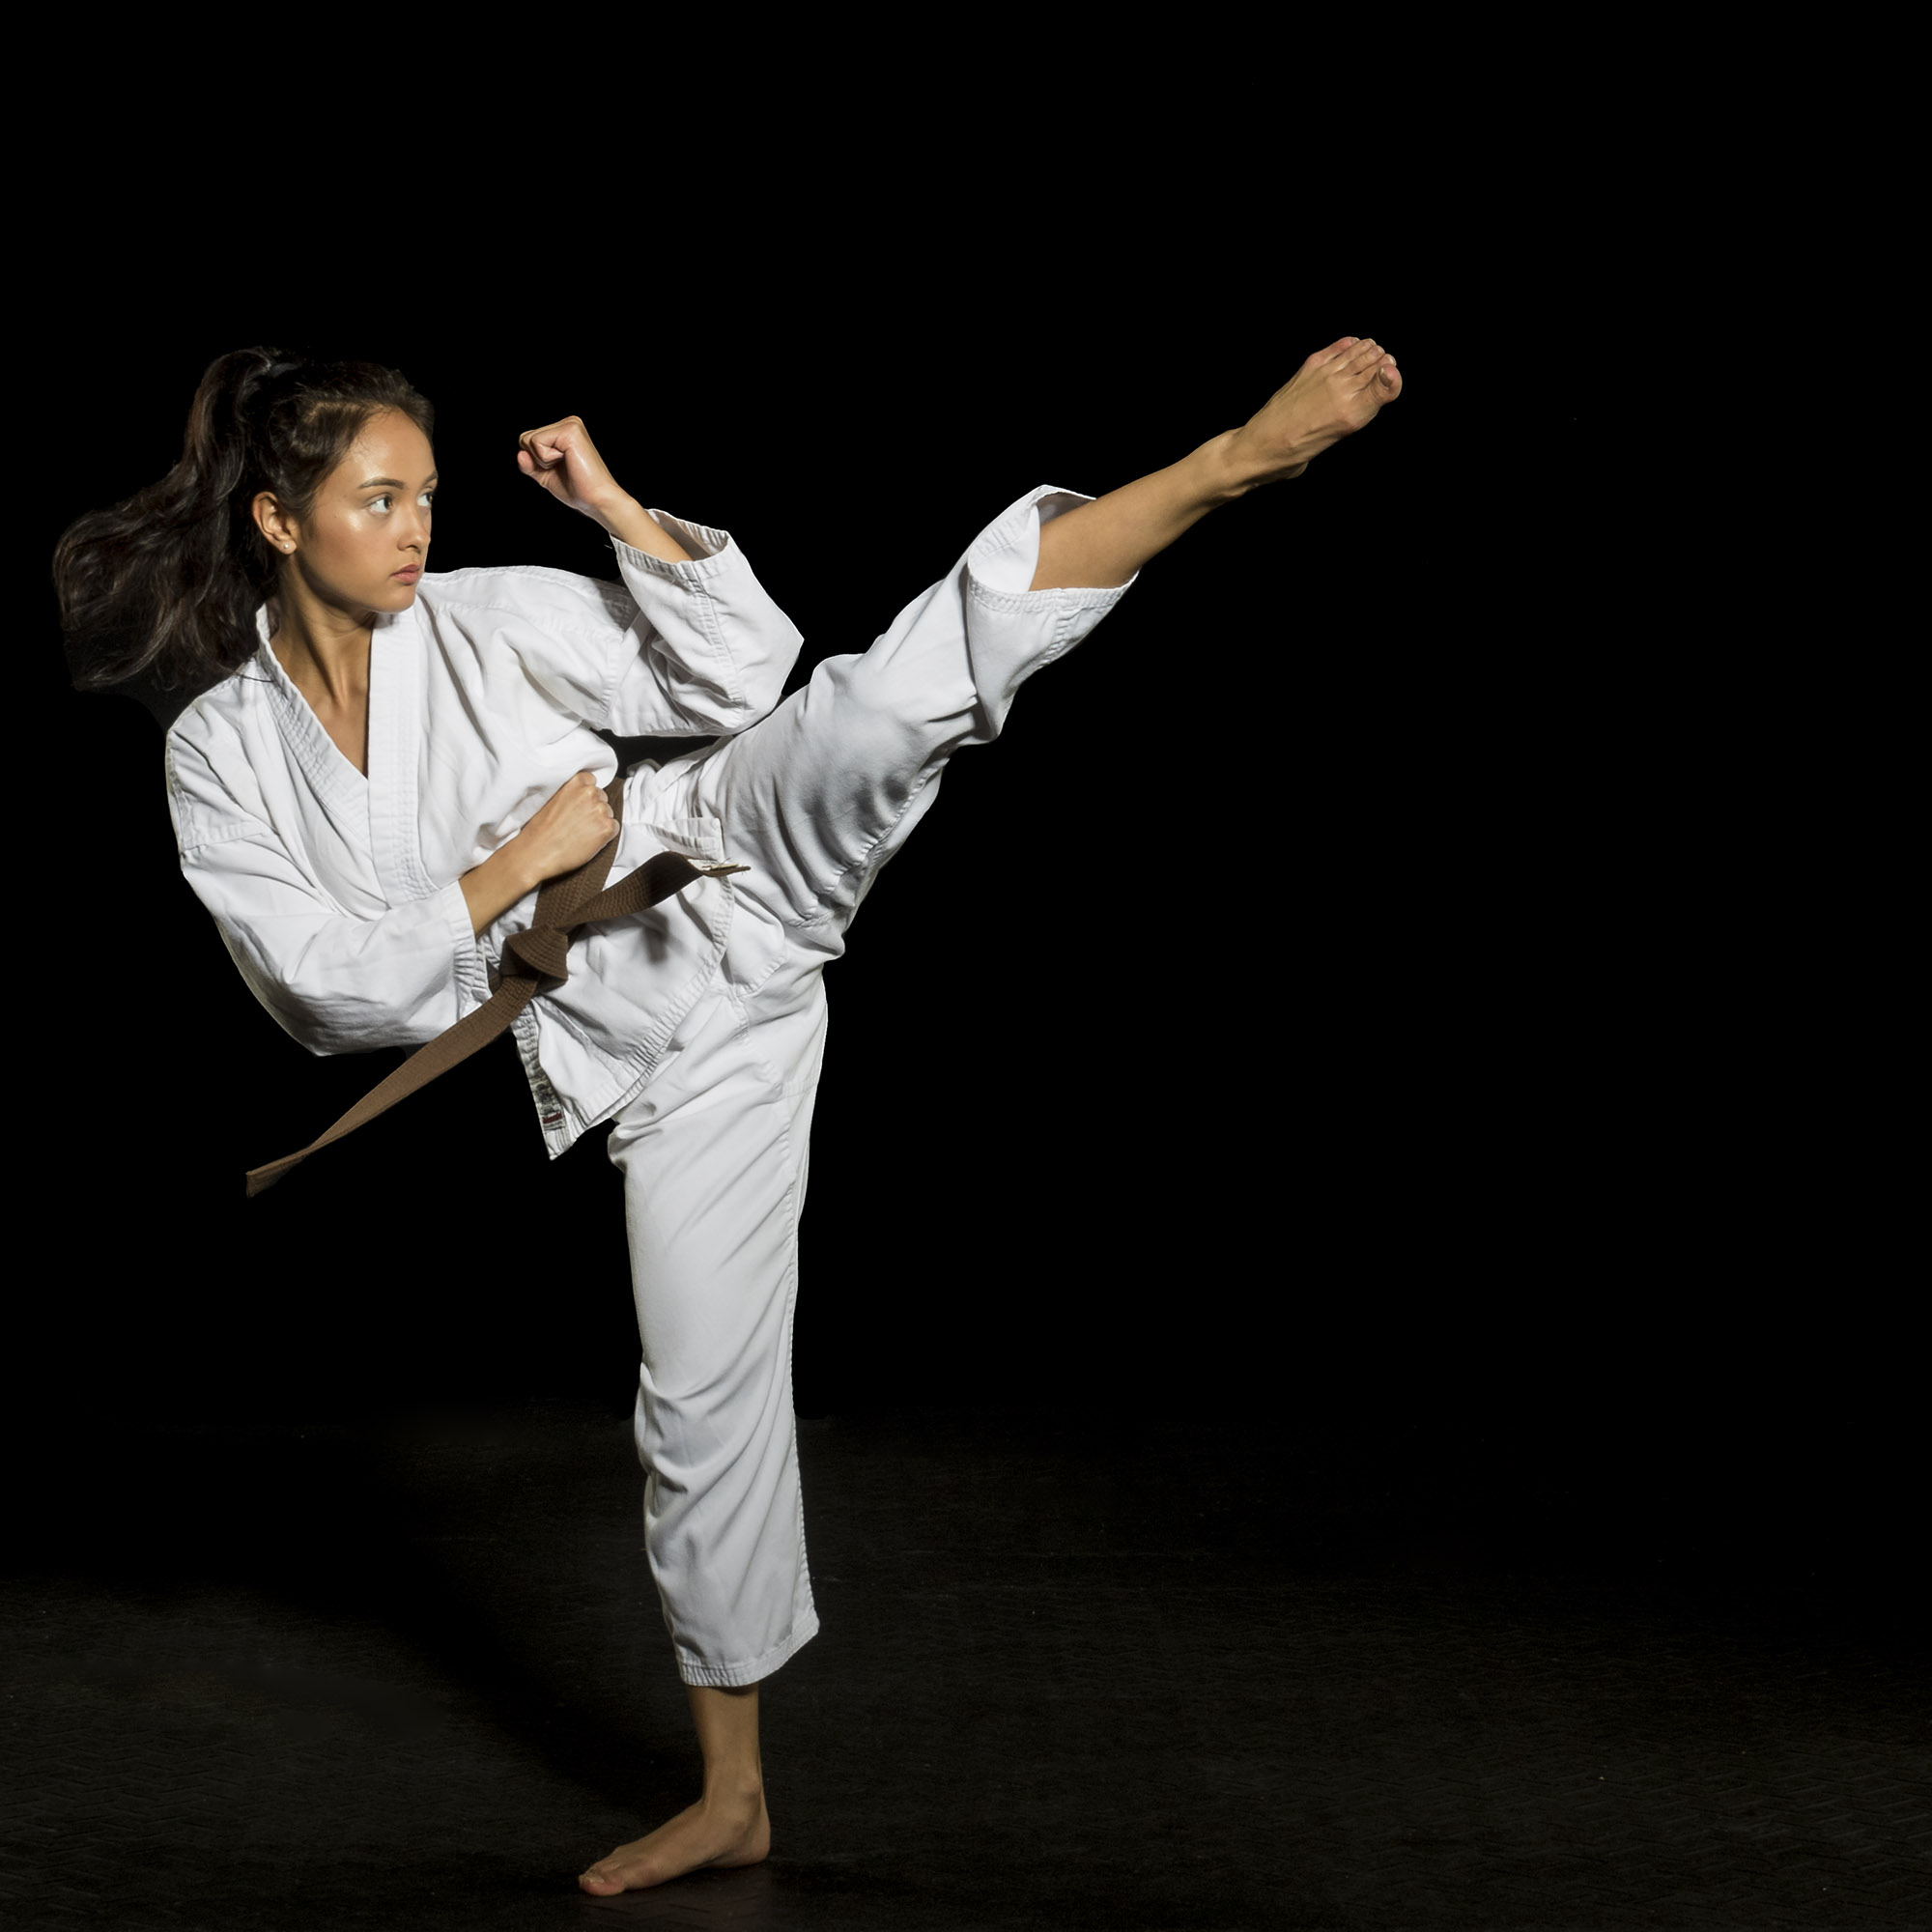 Jen is also a brown belt in Karate